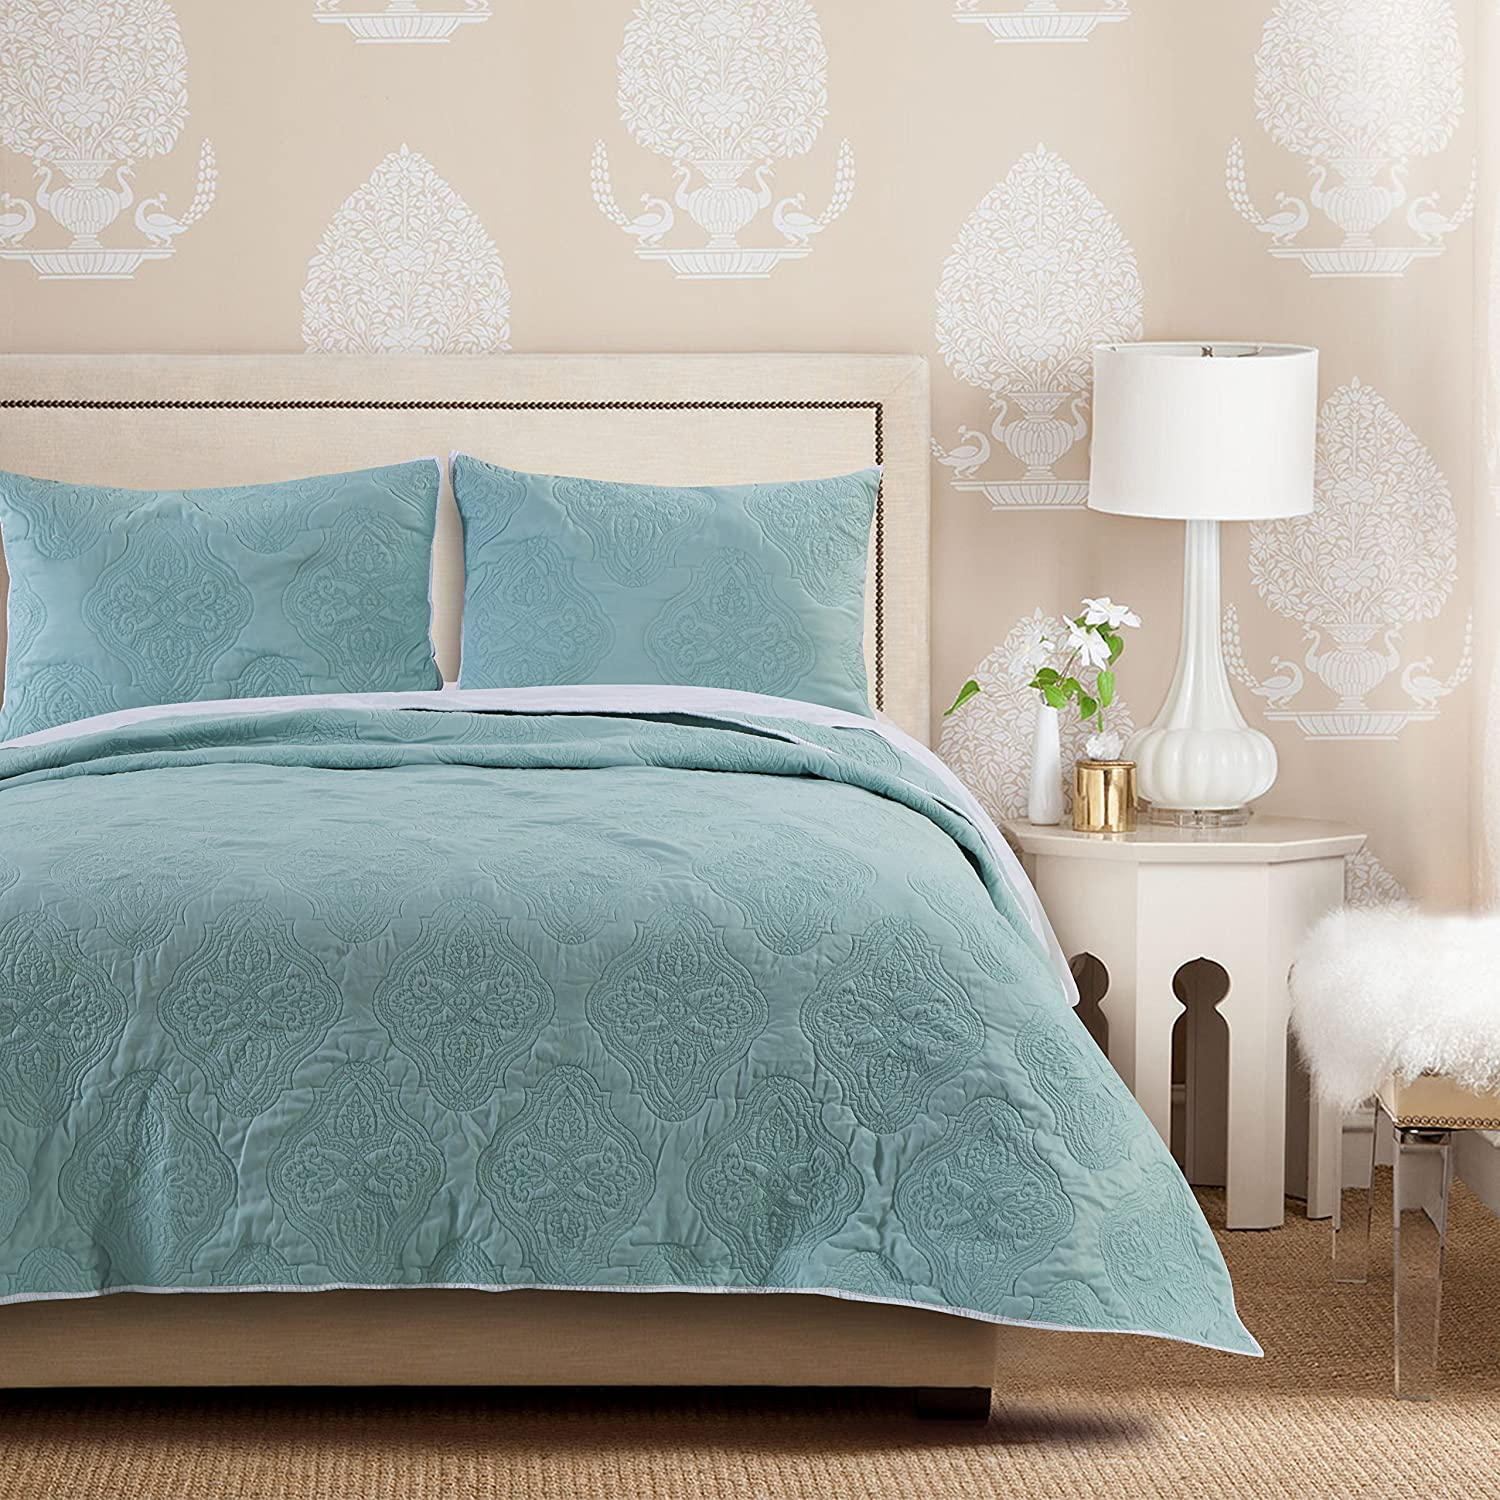 Barefoot Bungalow Cameo Aqua Haze Quilt Set, 3-Piece King Greenland Home Fashions GL-1612FMSK